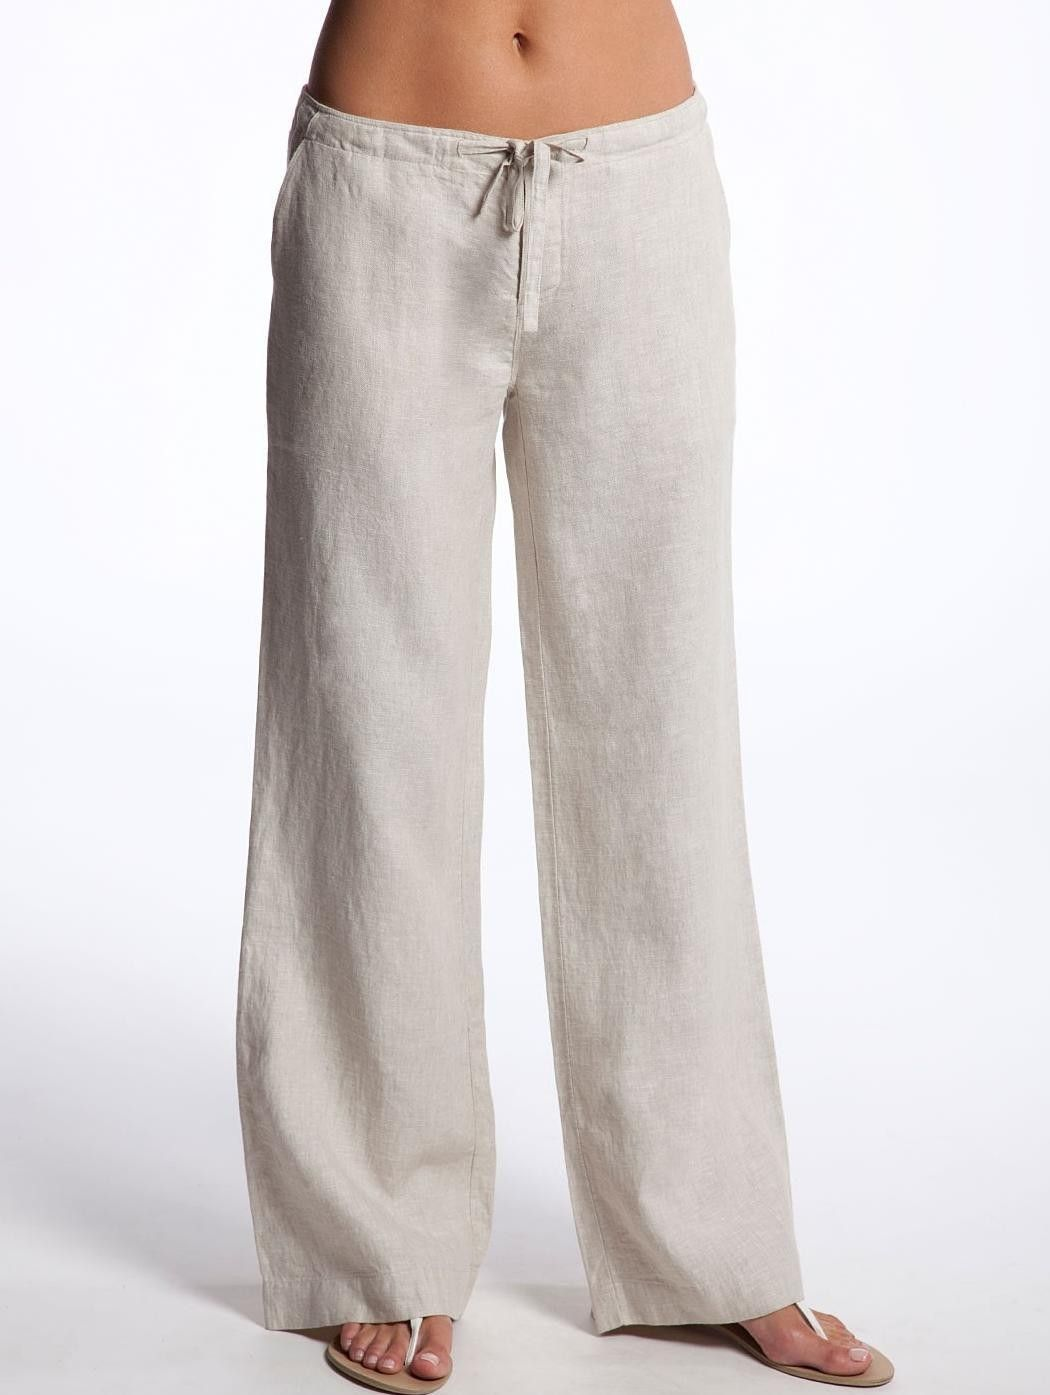 767a01409e7 Camel Relaxed Linen Pants - Women s Resort Wear